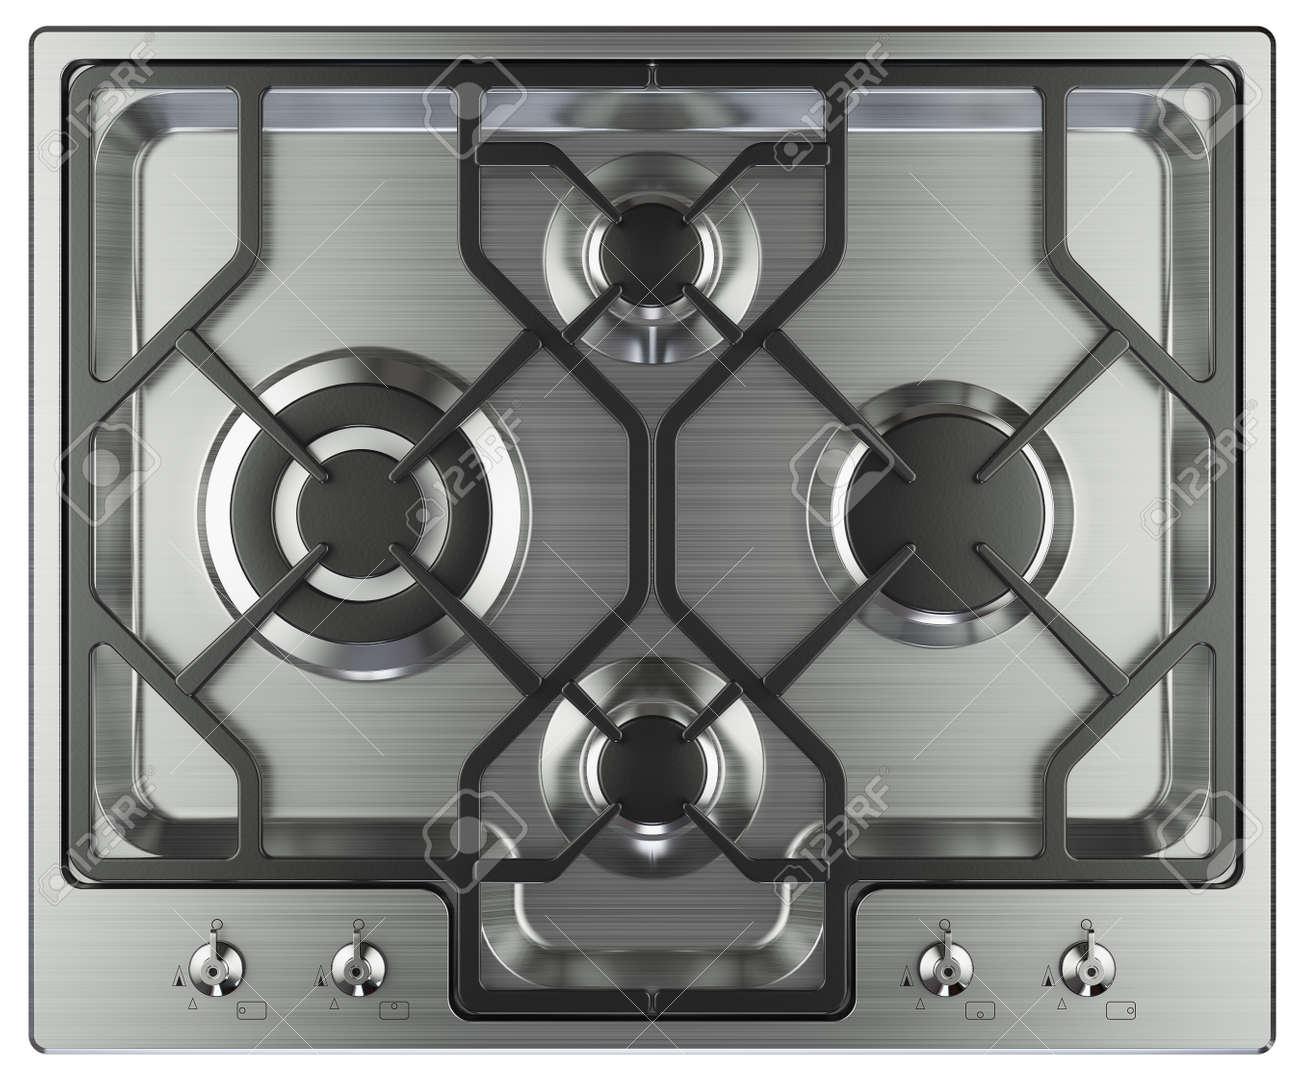 Kitchen stove top view. Isolated on white background 3d